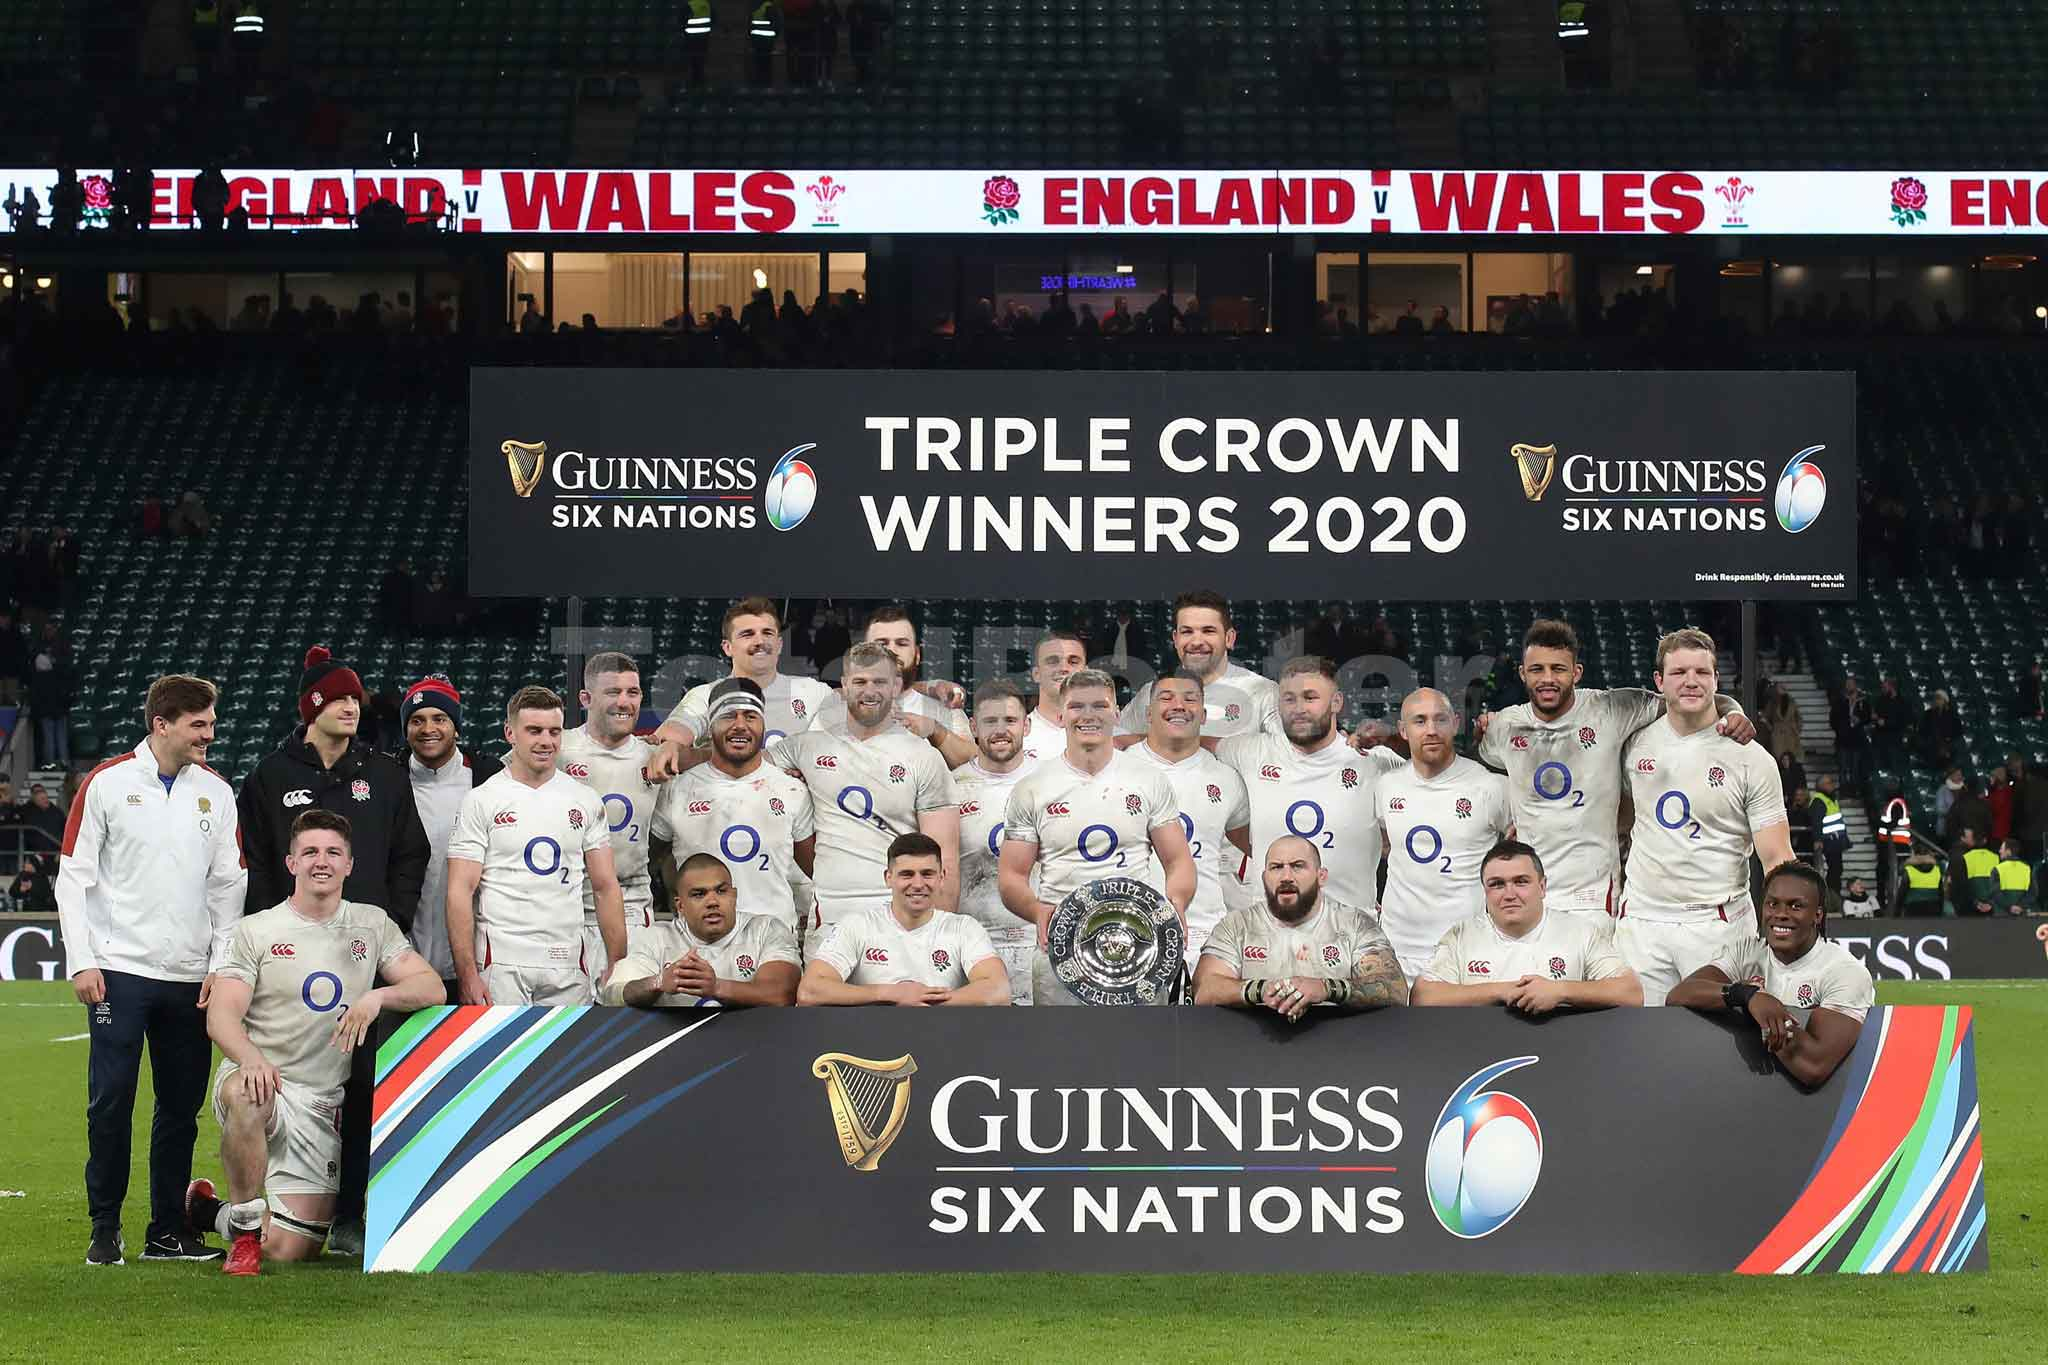 England Win Six Nations Triple Crown But Championship Finale Uncertain